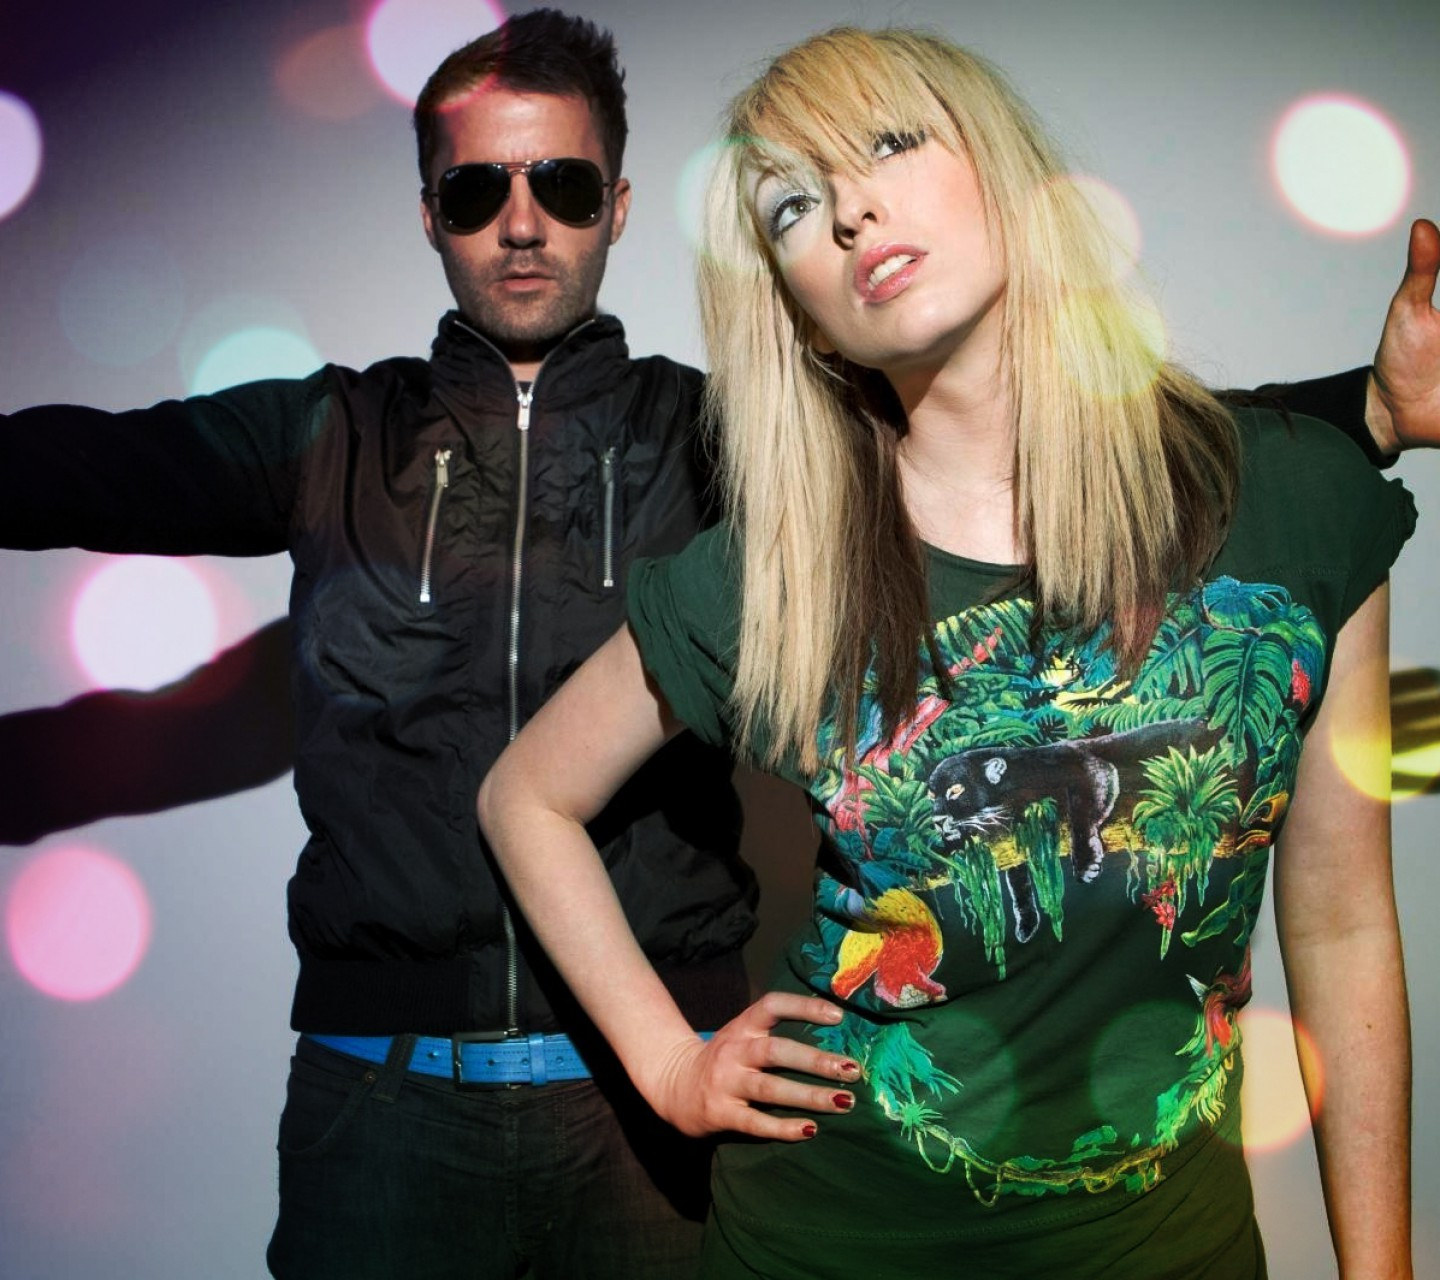 The Ting Tings - That's Not My Name / Great DJ